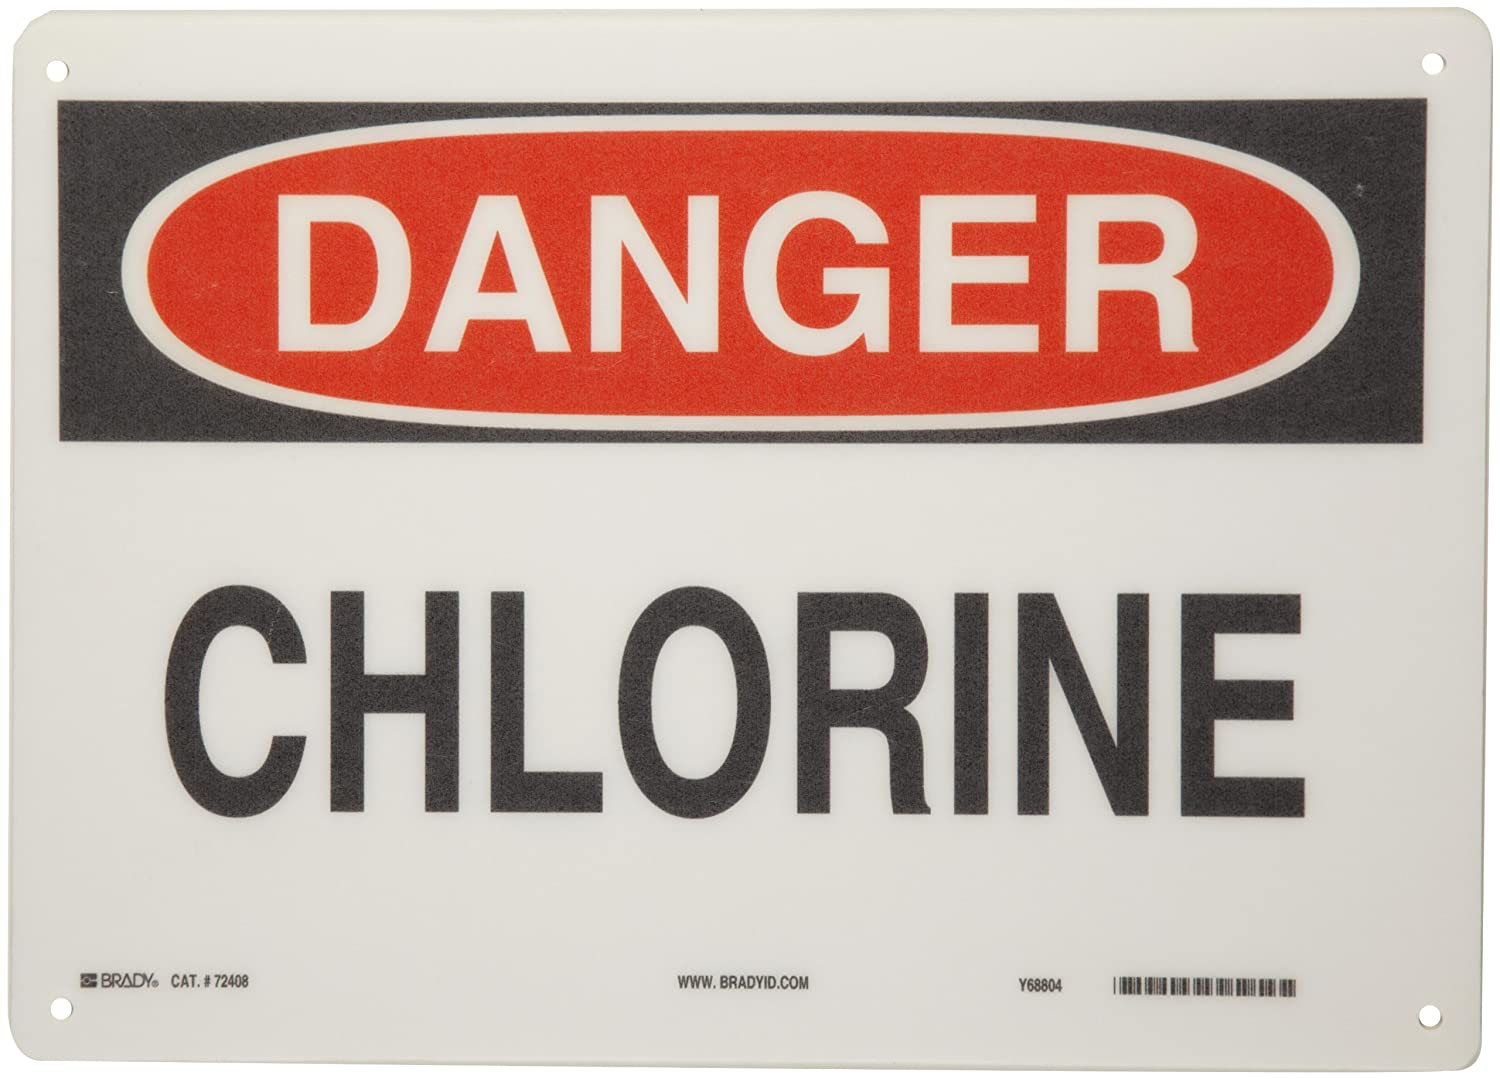 Legend Chlorine Header Danger Legend Chlorine Header Danger Brady 84356 14 Width x 10 Height B-302 Polyester Black and Red on White Chemical and Hazardous Materials Sign